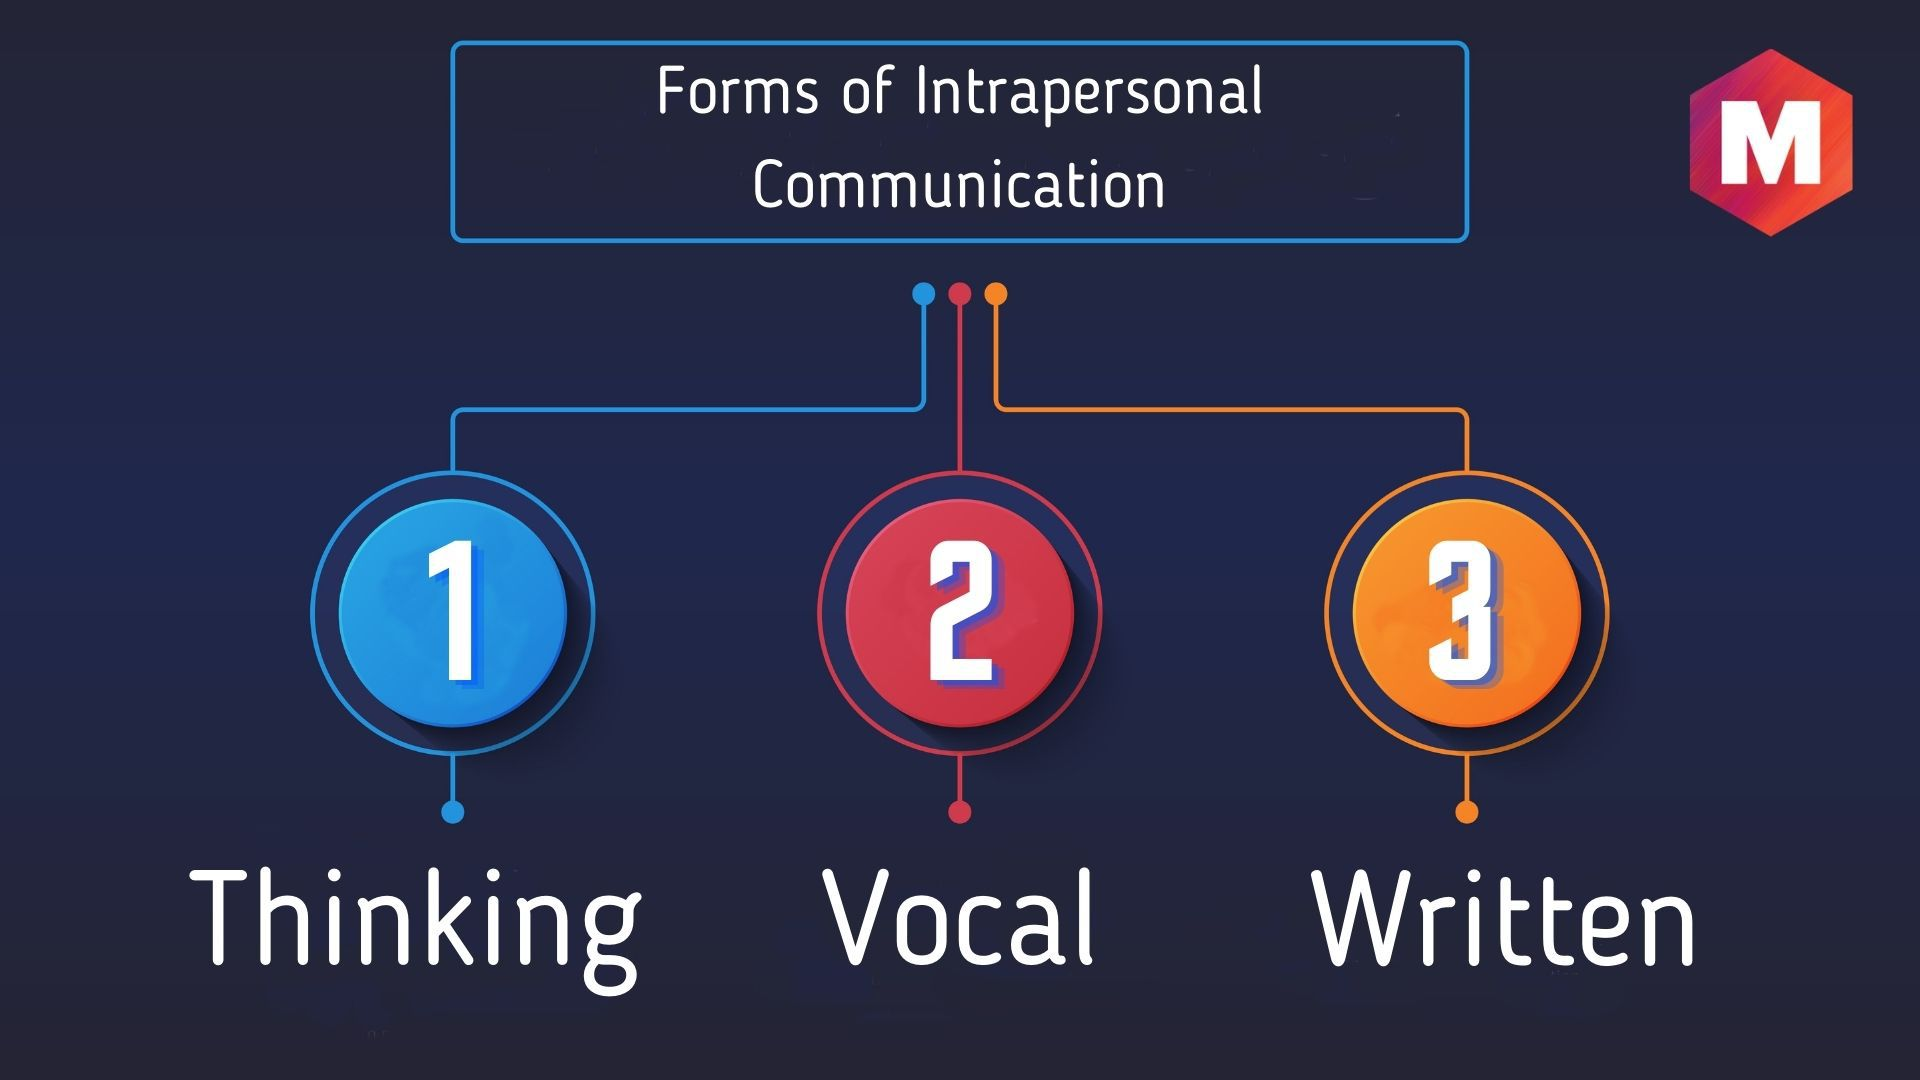 Forms of Intrapersonal Communication